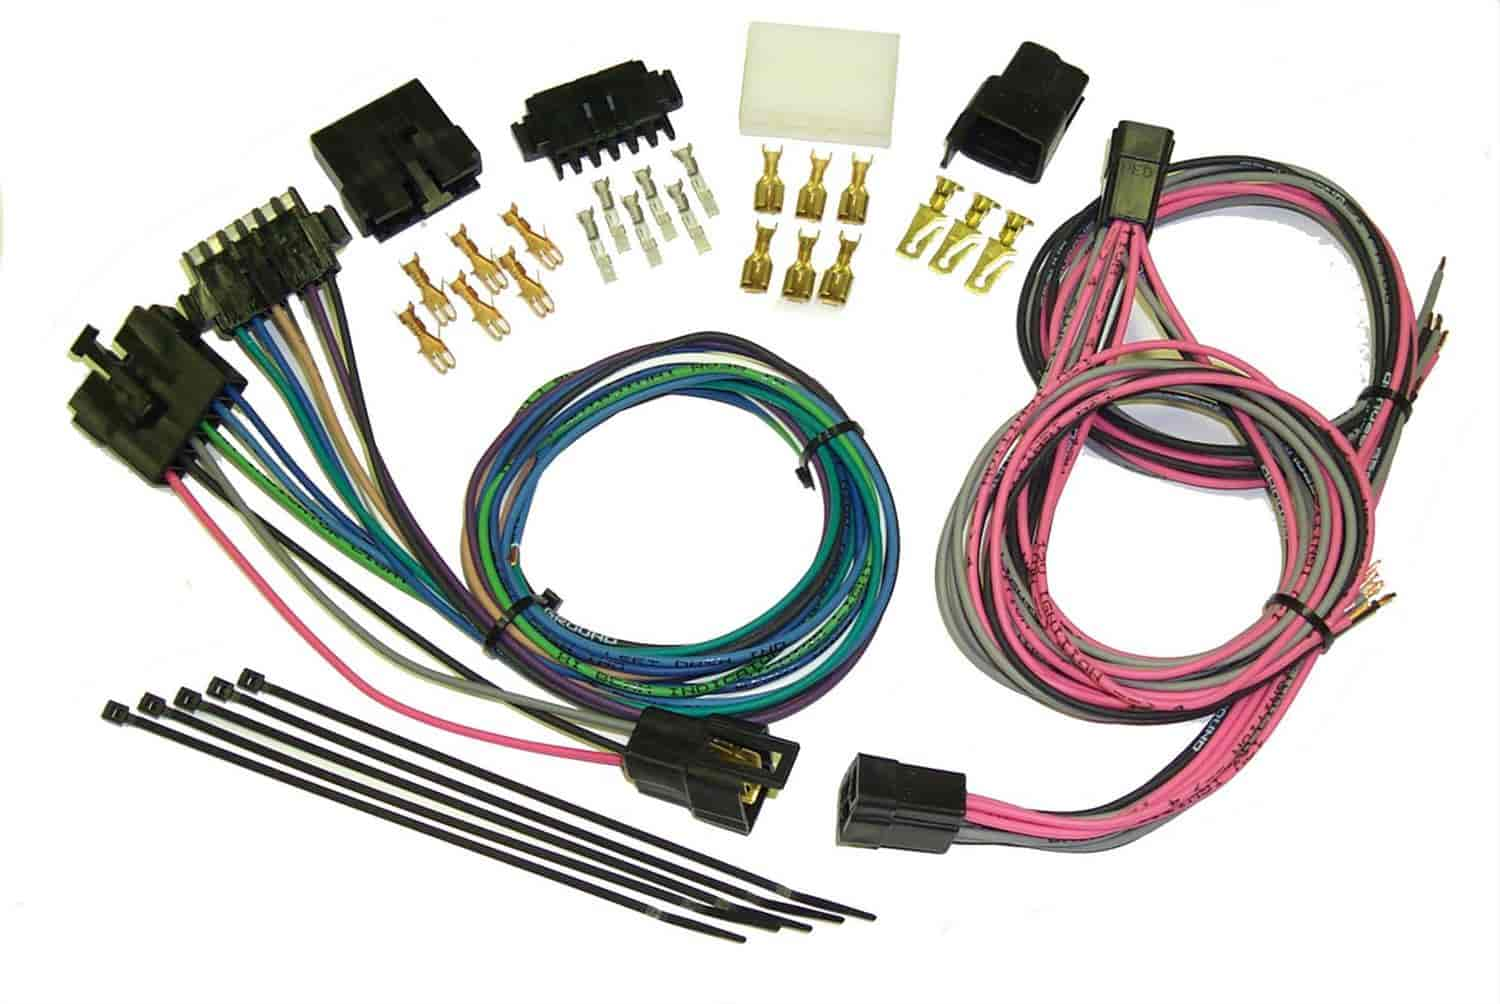 American Autowire 500505: Universal Gauge Connection Harness Kit | on universal miller by sperian harness, construction harness, universal air filter, universal equipment harness, universal ignition module, universal battery, universal radio harness, universal heater core, universal fuel rail, lightweight safety harness, stihl universal harness, universal steering column, universal fuse box,